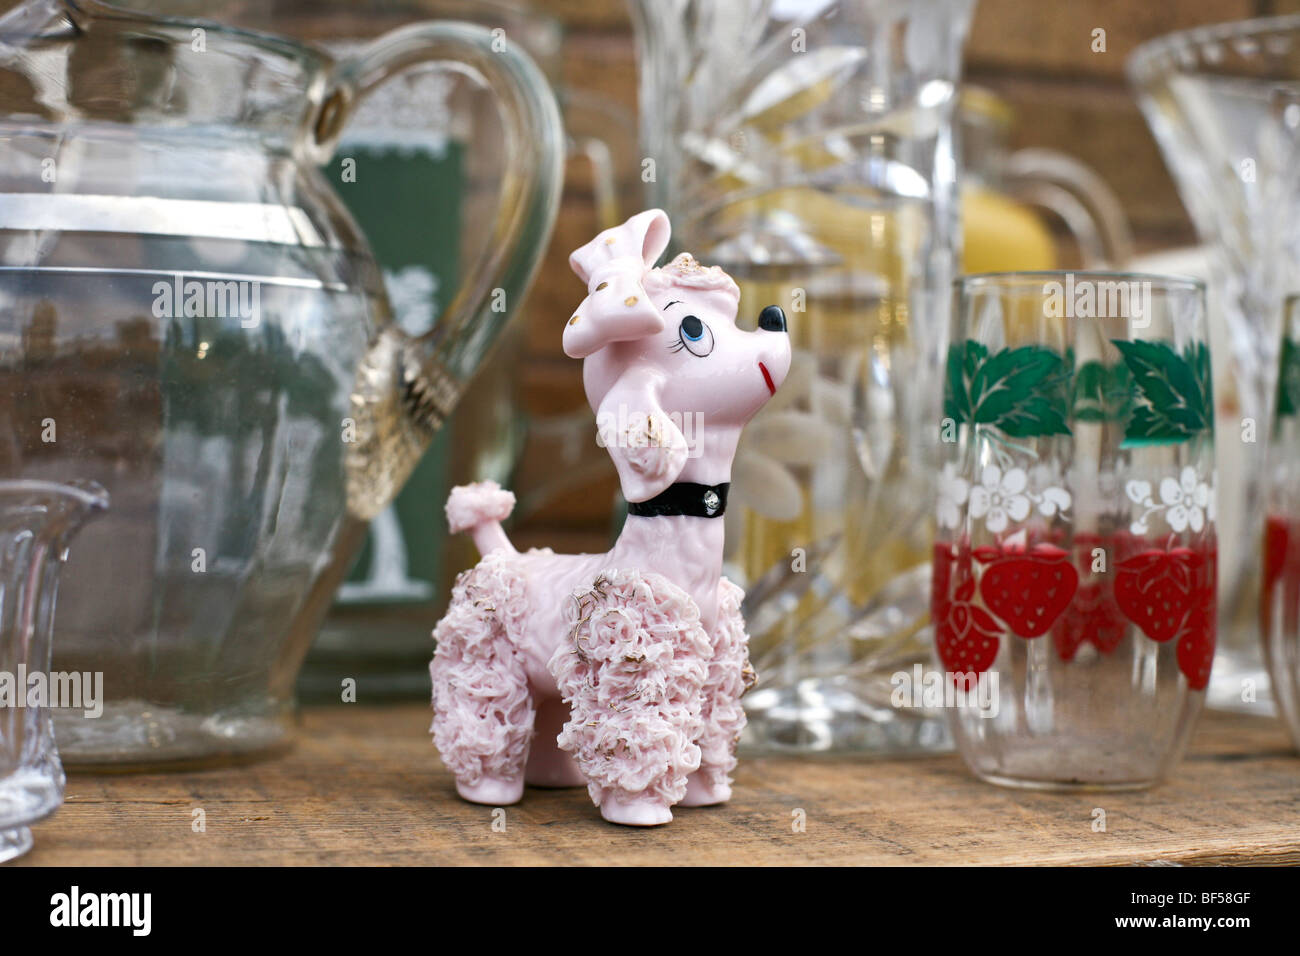 kitsch glass figurine sprightly pink poodle with gold accents displayed for sale at Hells Kitchen flea market in - Stock Image